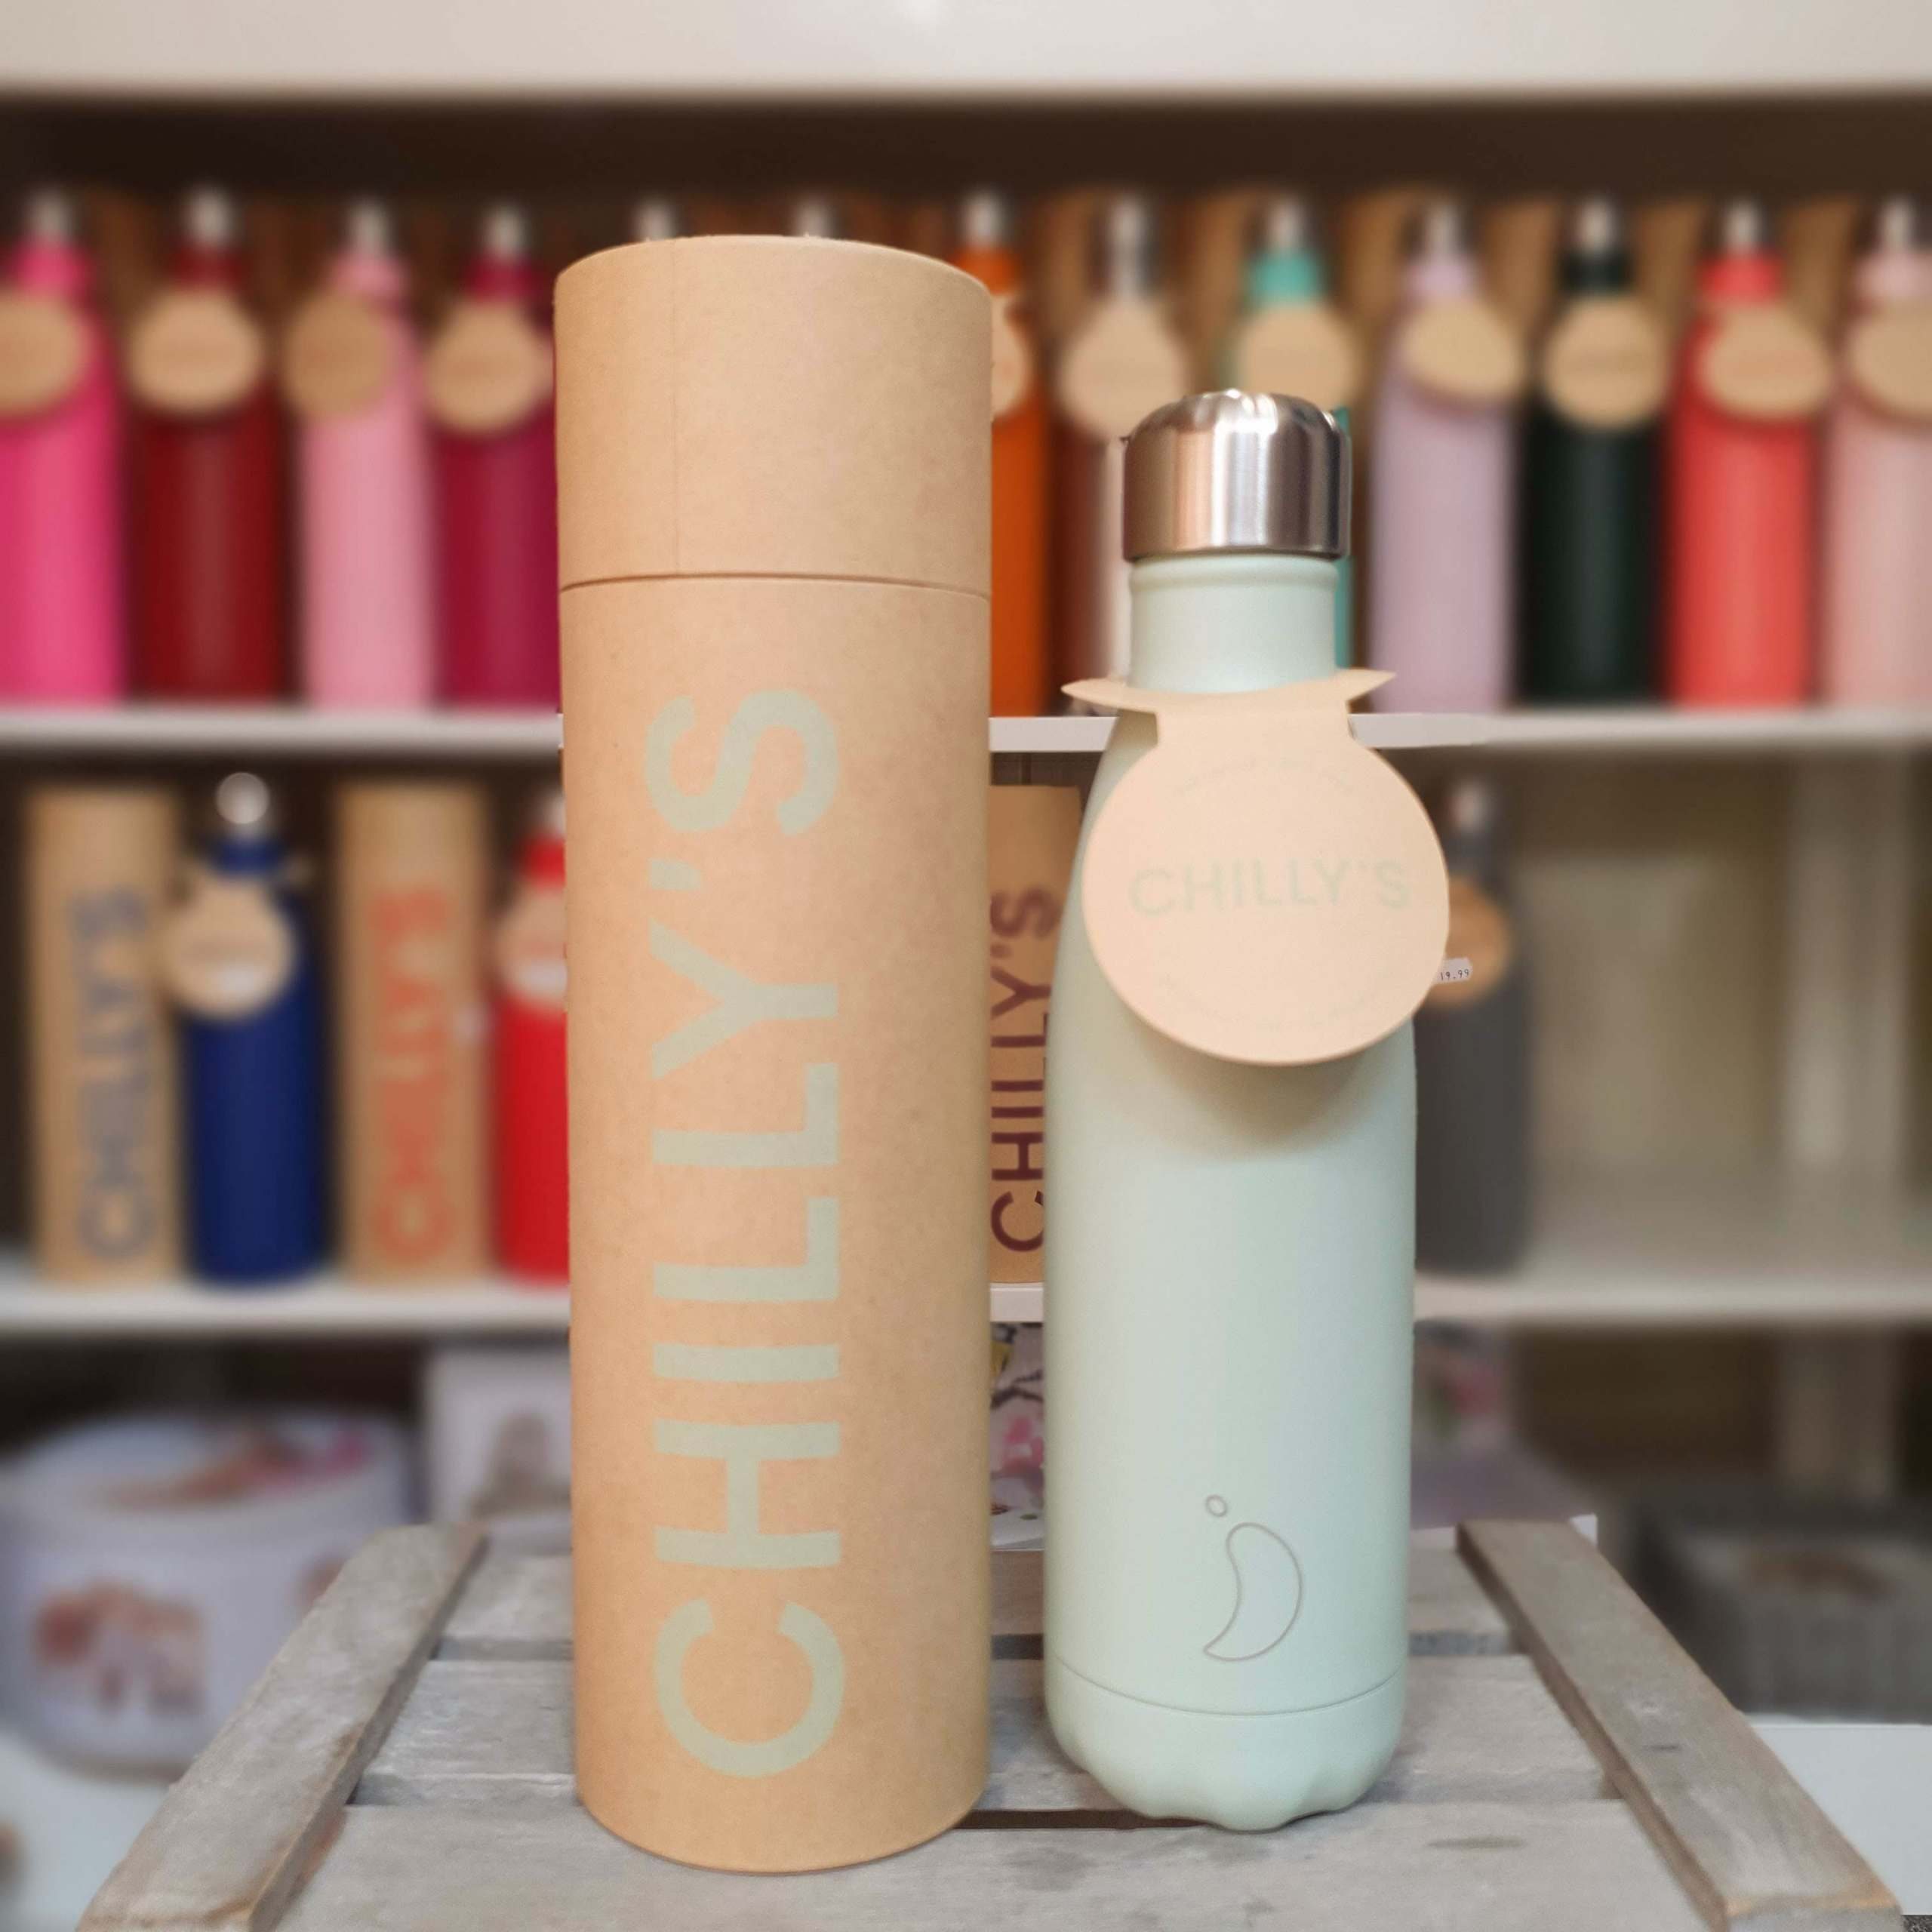 Blush Green Chilly's Bottle